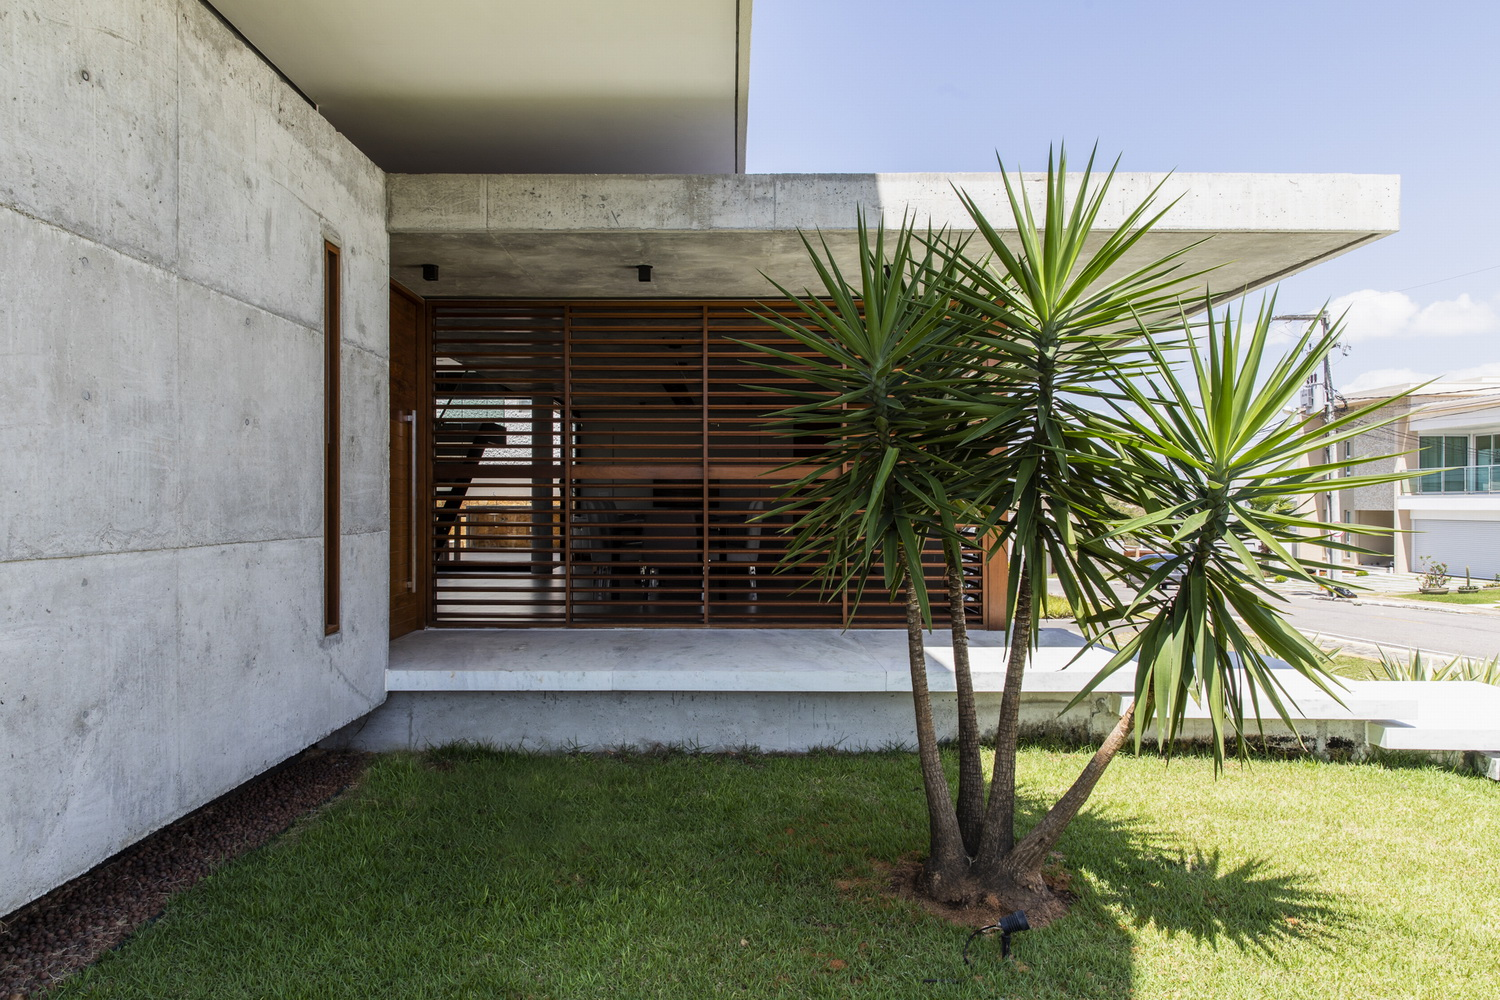 调整大小 18_CASA_IF_-_Martins_Lucena_Arquitetos-16.jpg